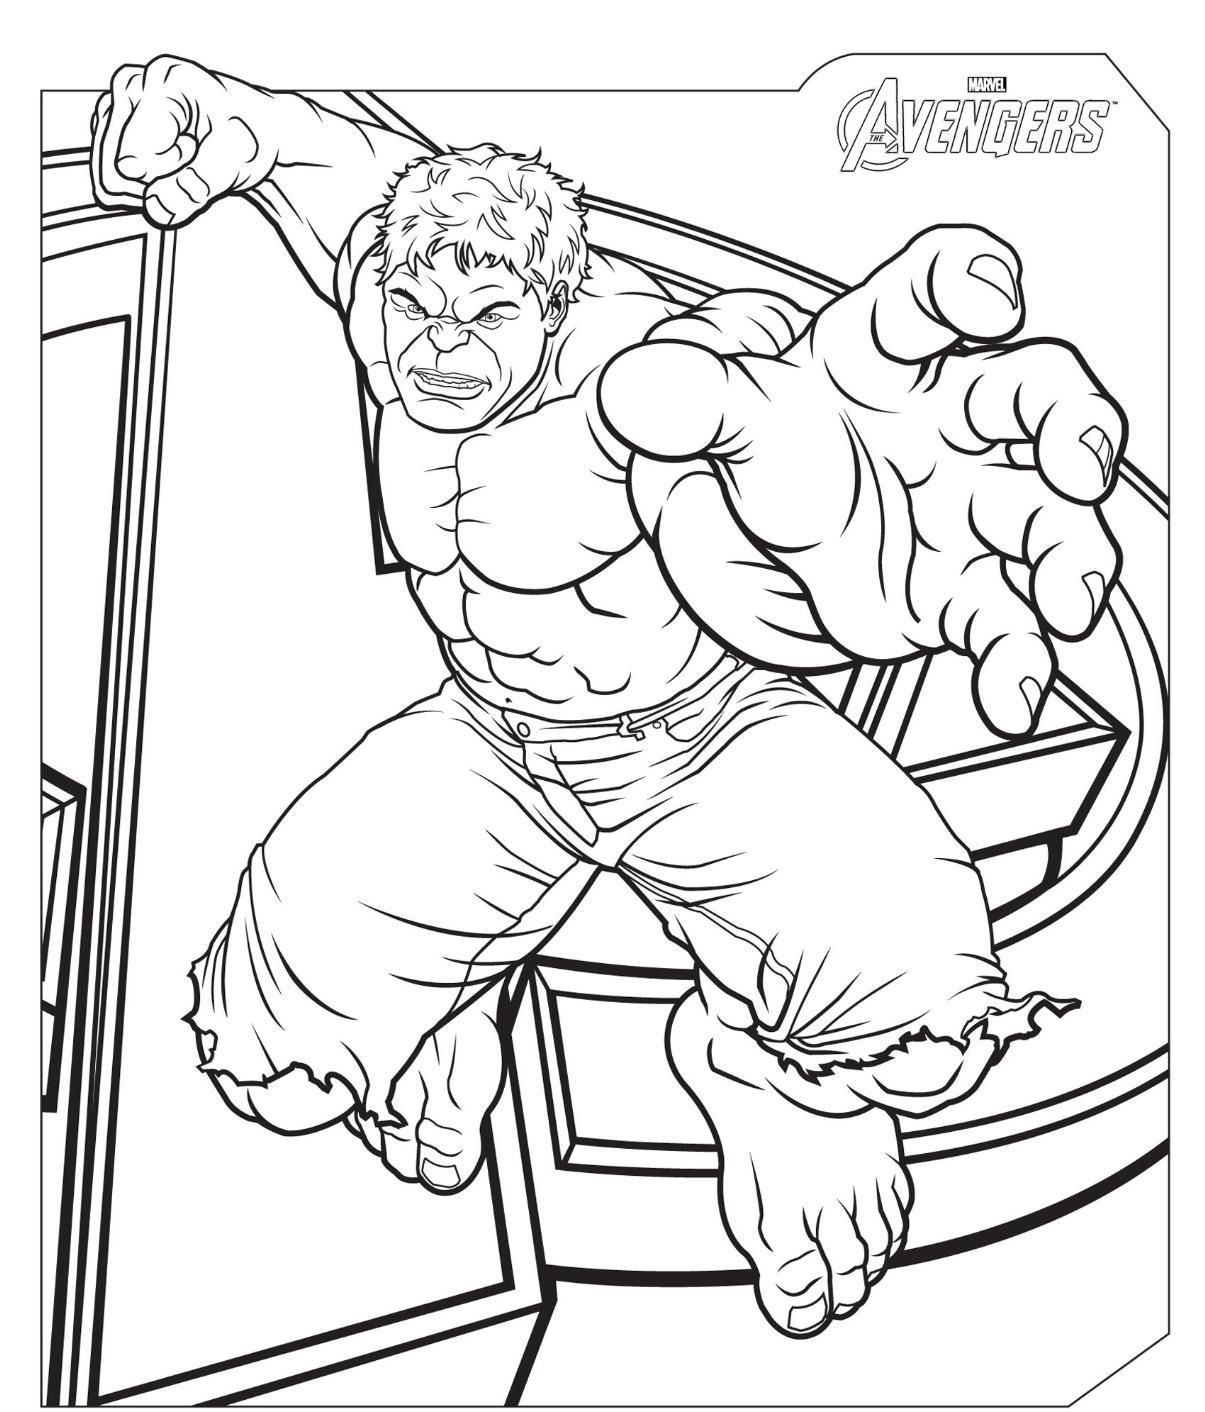 Incredible hulk coloring book pages - The Avengers Hulk Coloring Pages Super Heroes Coloring Pages Of